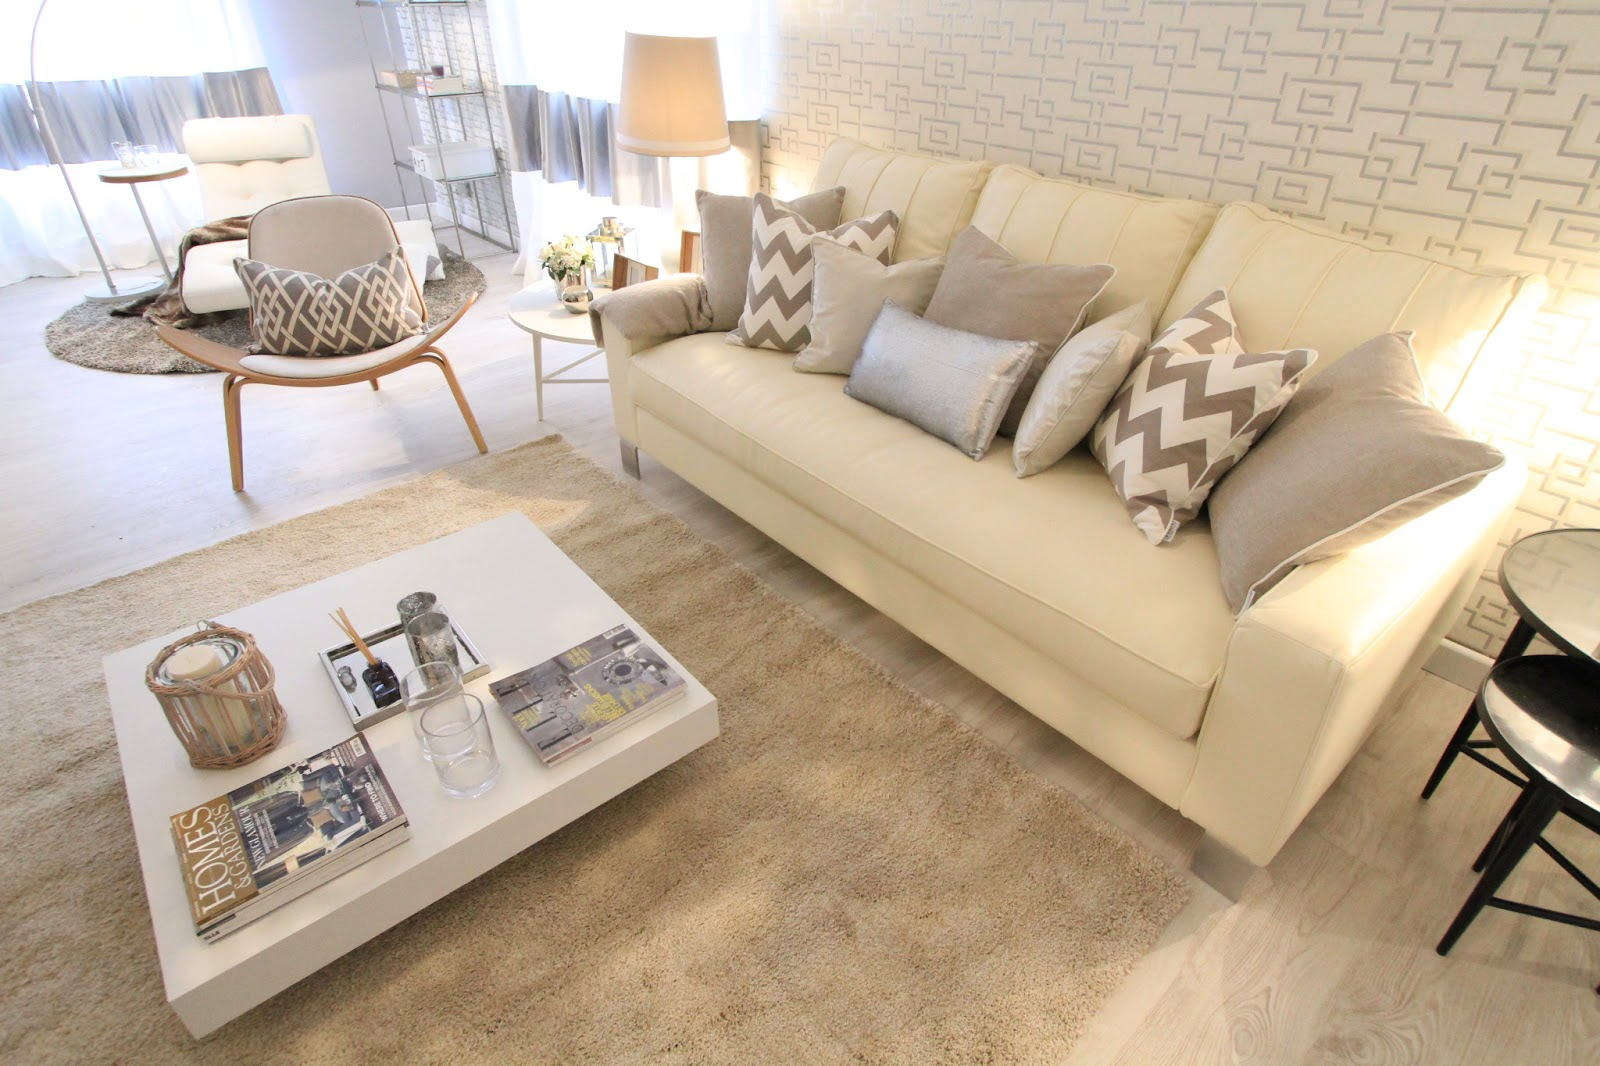 Home styling ana antunes querido mudei a casa tv show for Tappeti sala leroy merlin